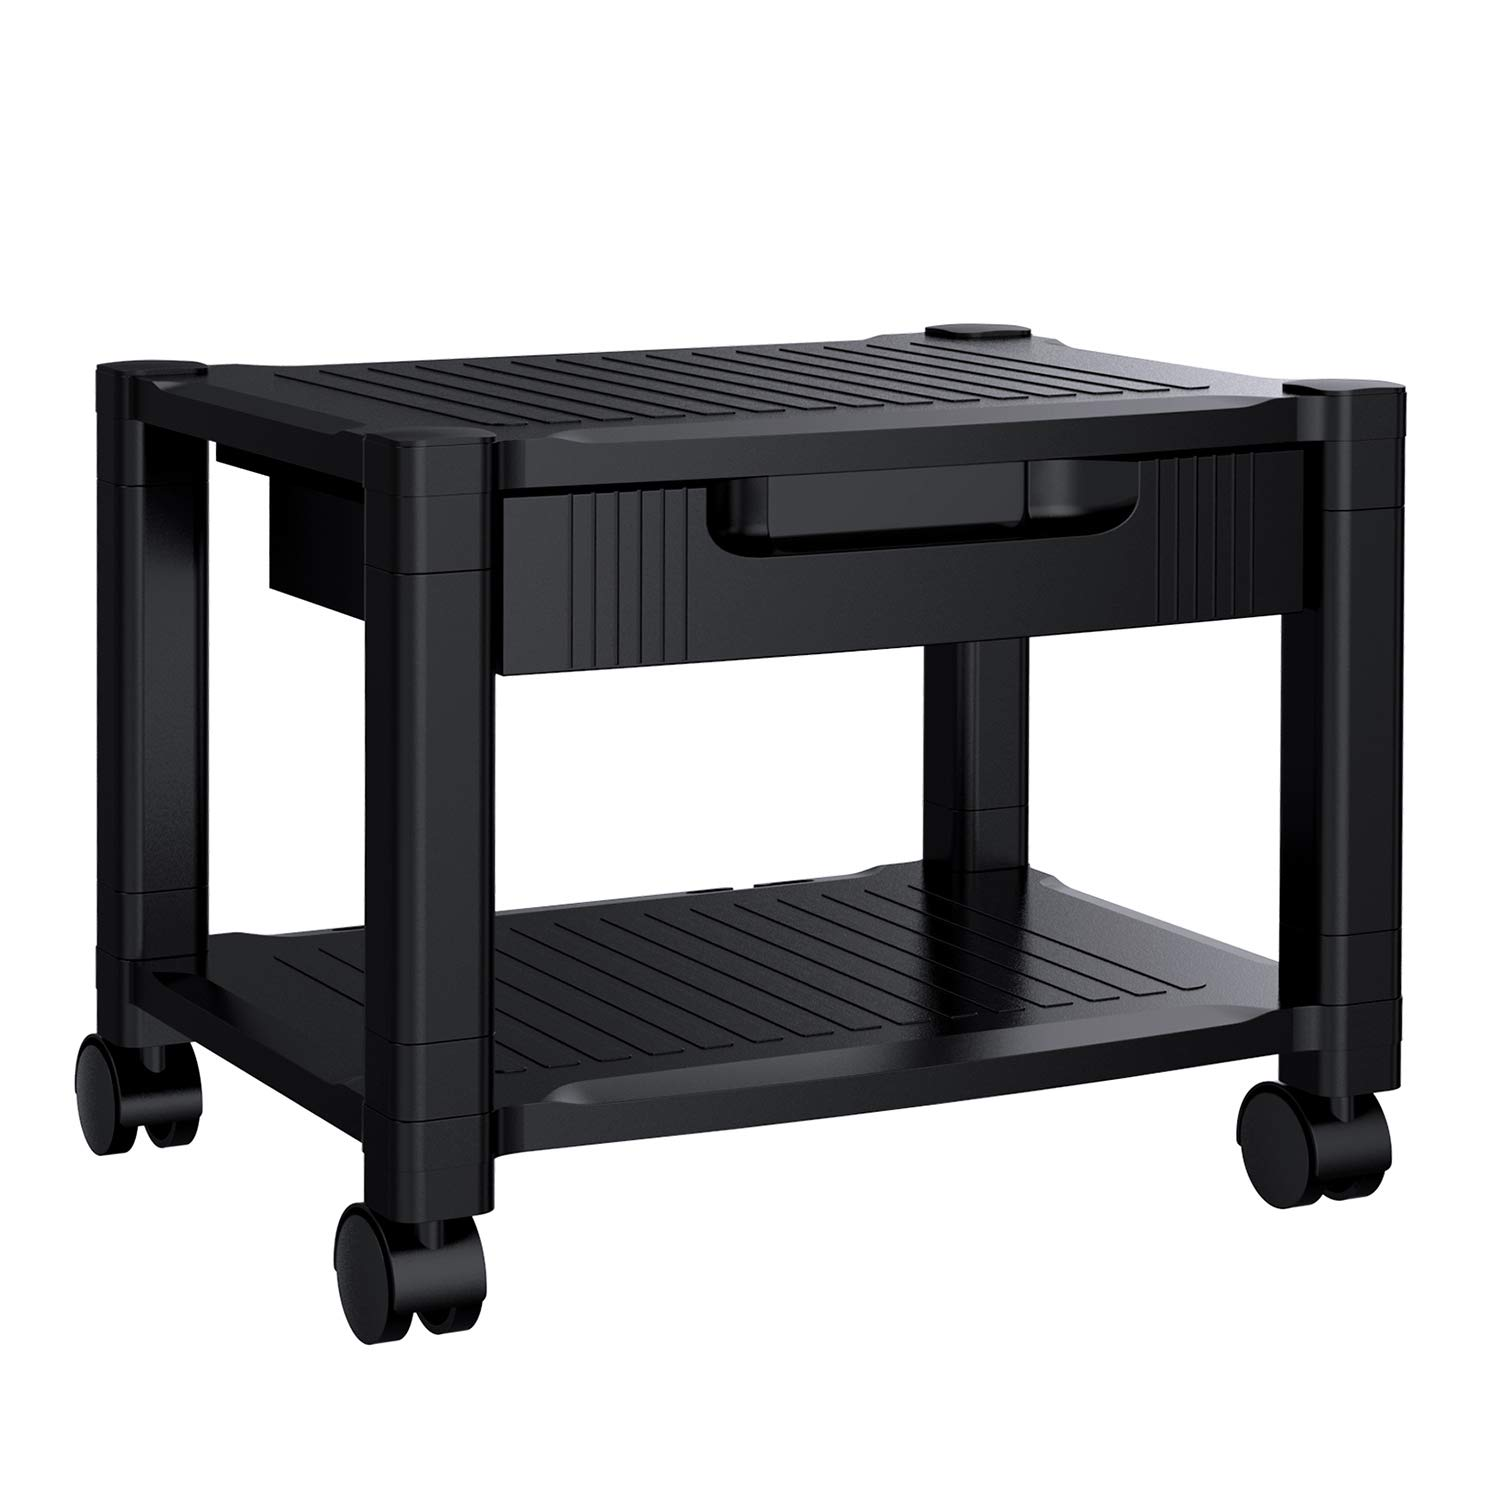 Printer Stand - Under Desk Printer Stand with Cable Management & Storage Drawers for Office Space Organizer, Height Adjustable Printer Desk with 4 Wheels & Lock Mechanism (1 Pack, Black)